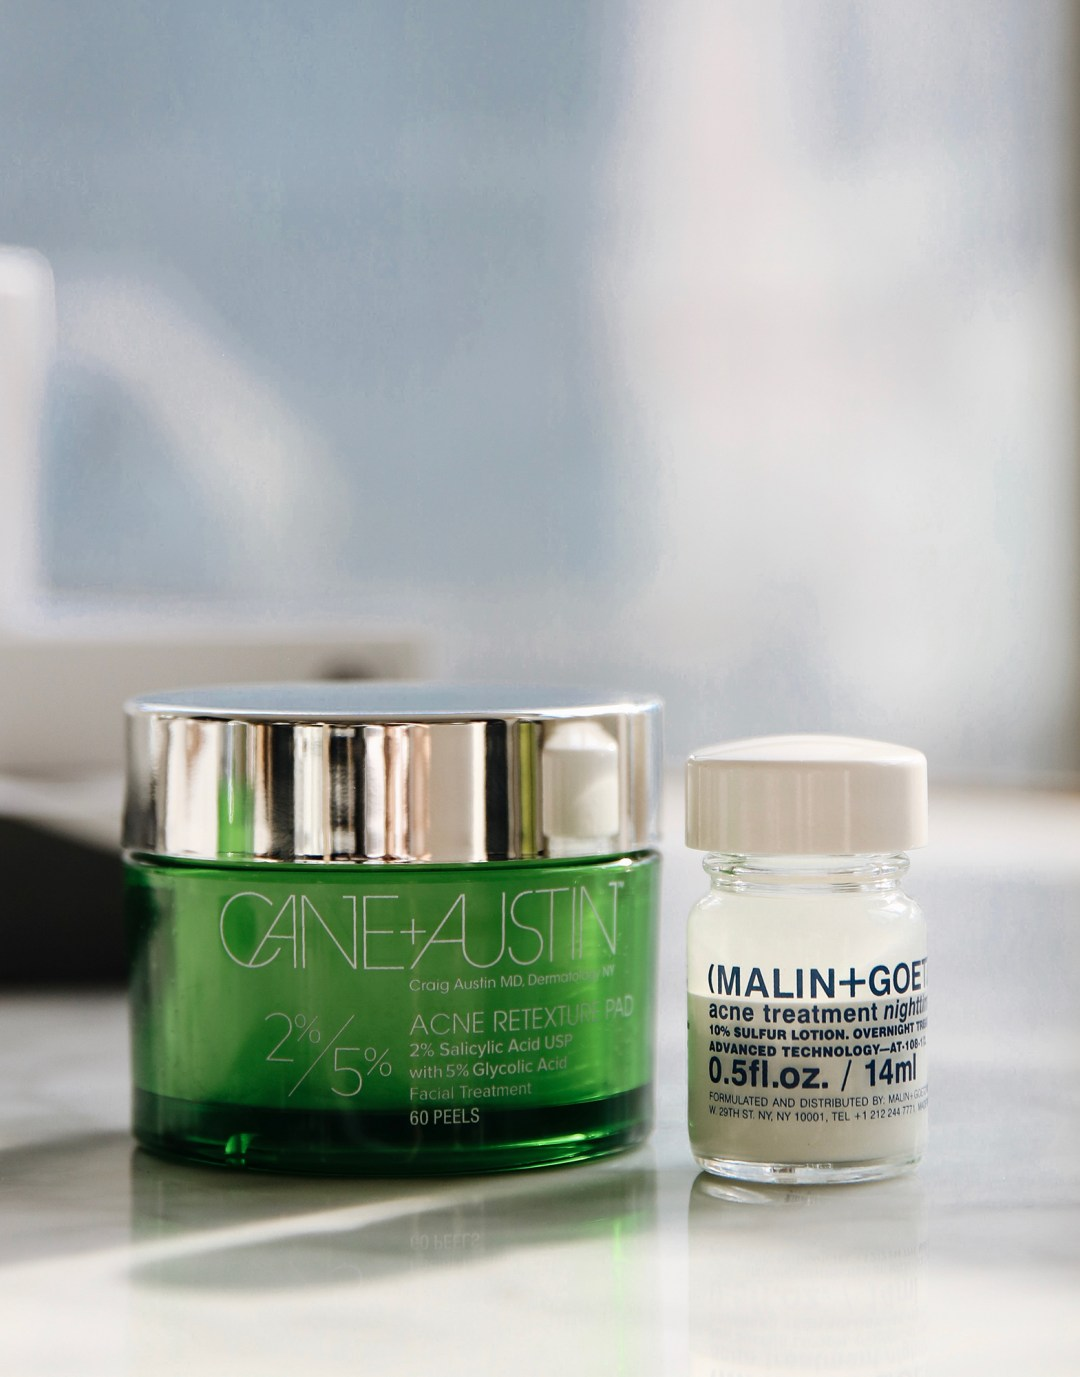 Brown Eyed Toast x Latest Loves Nov 17 - Cane and Austen Acne Retexture Pads and Malin and Goetz Acne Treatment Night.jpeg